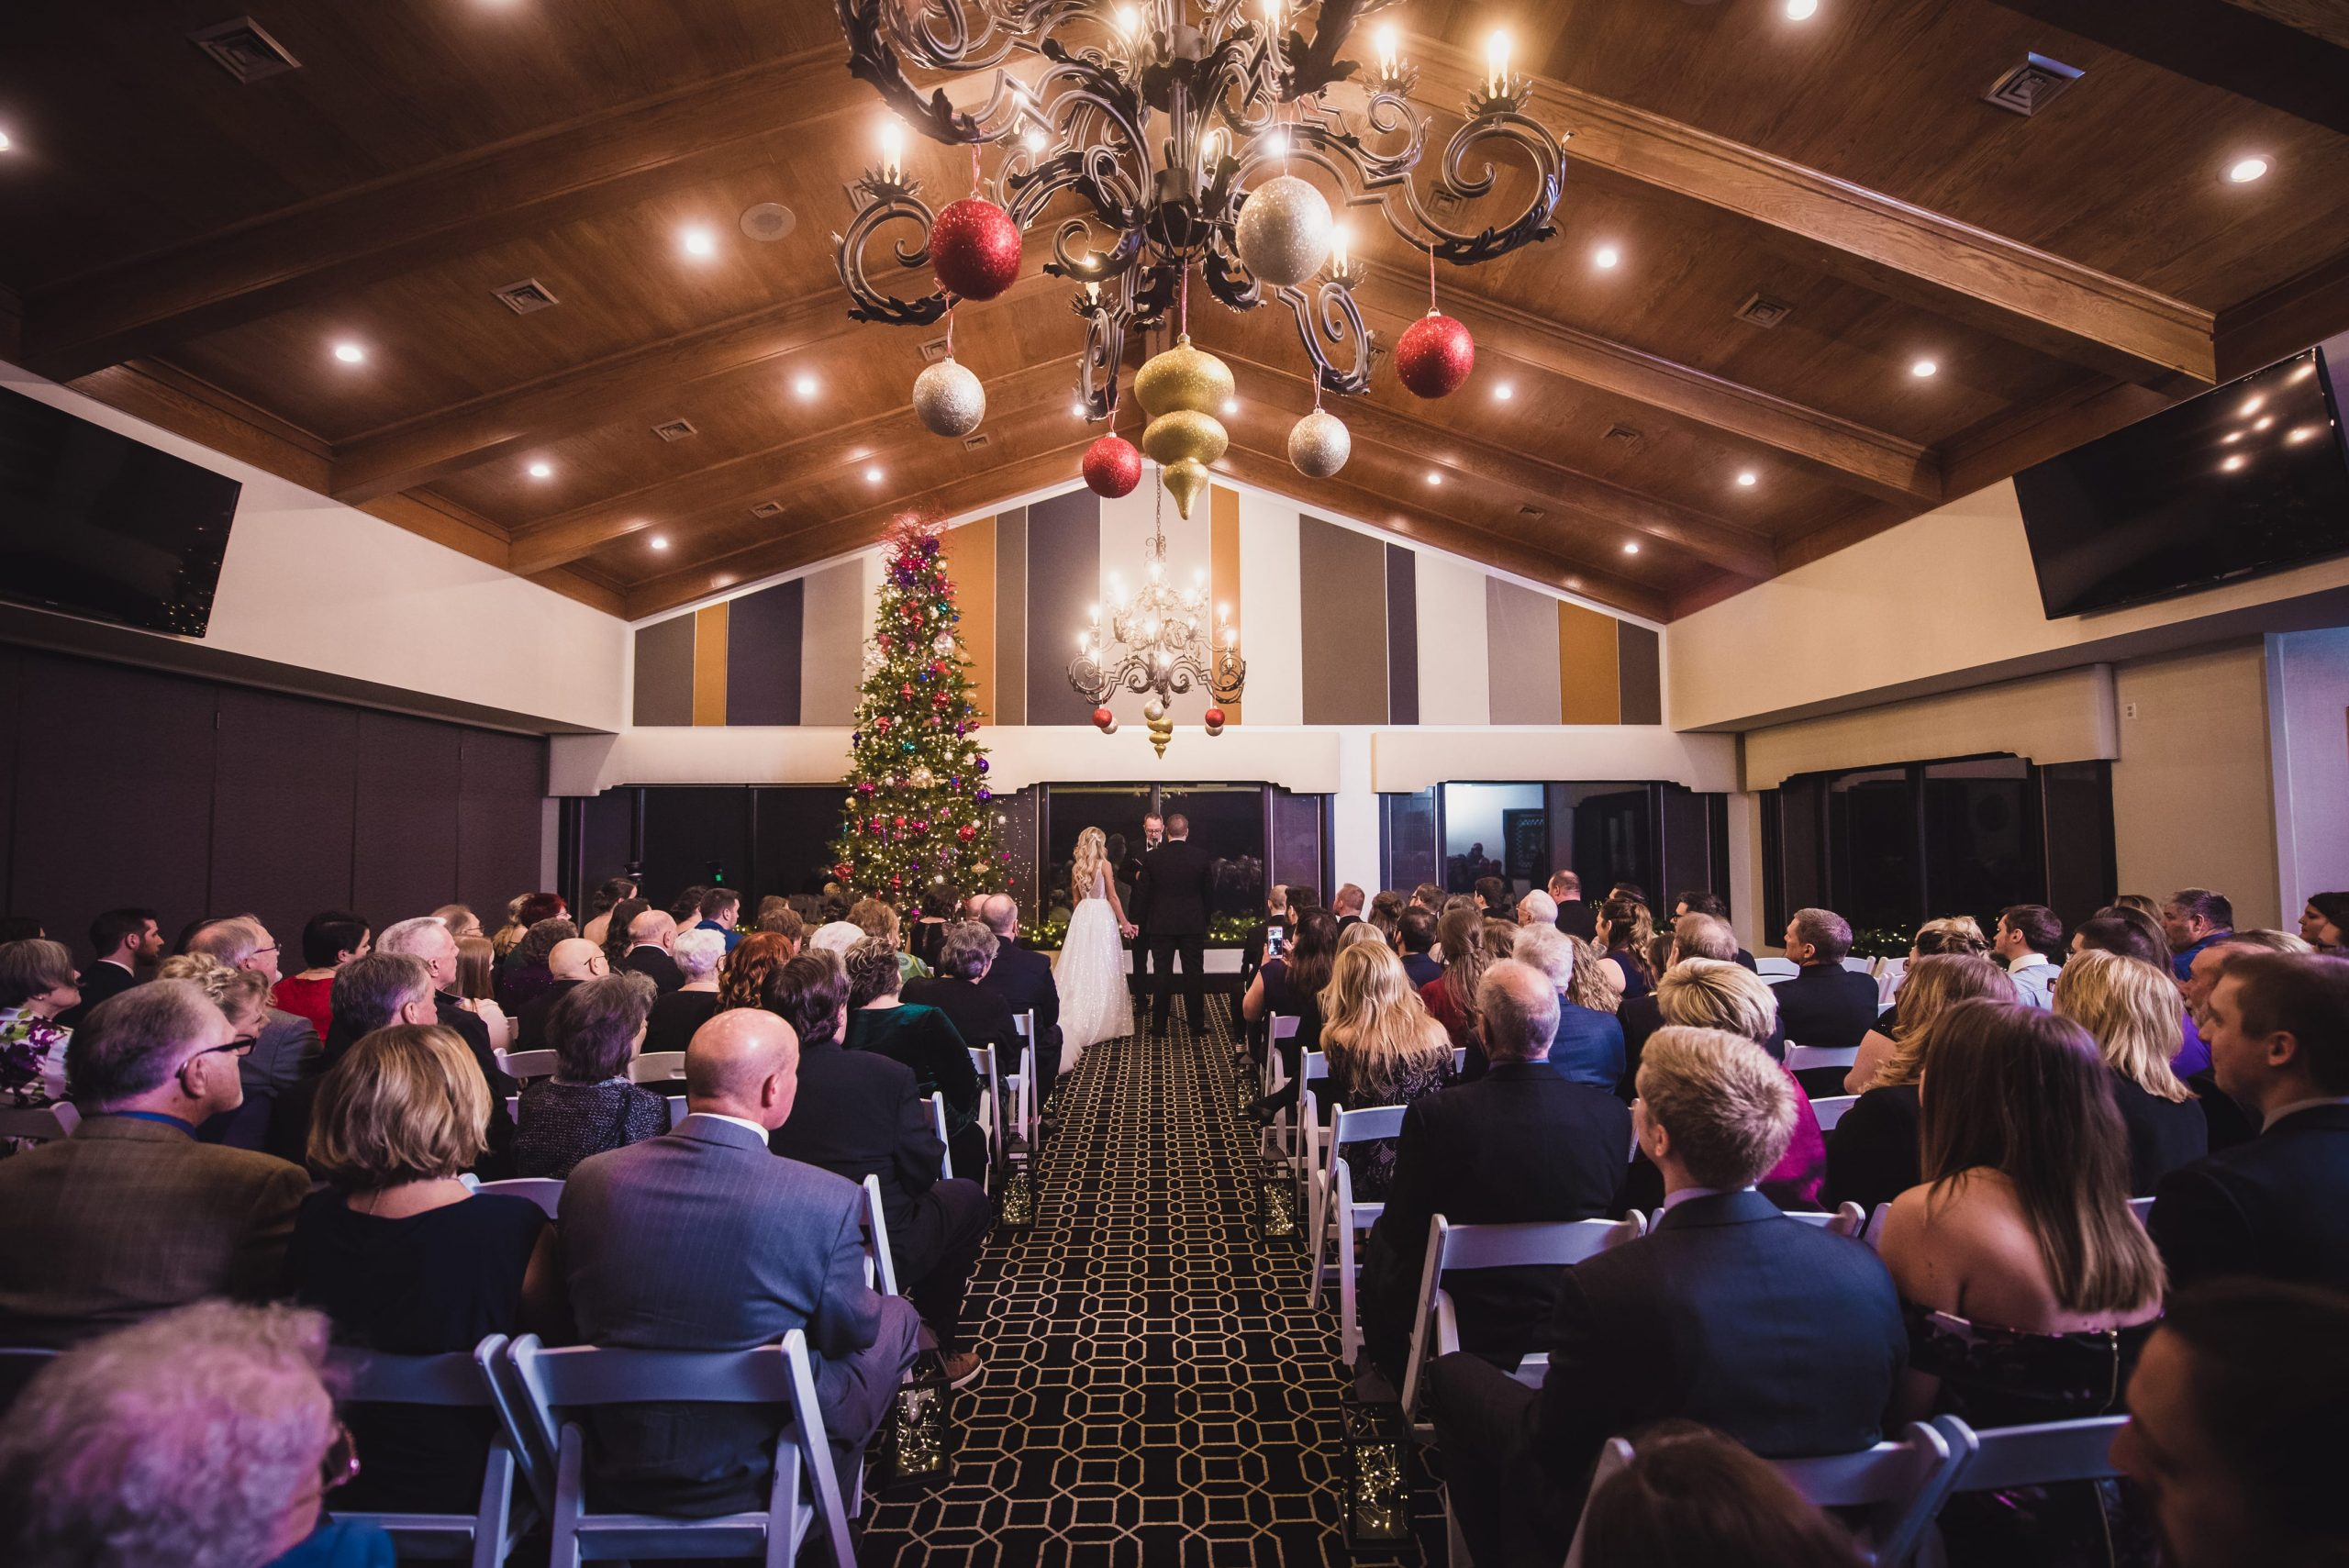 wedding ceremony at Christmas time